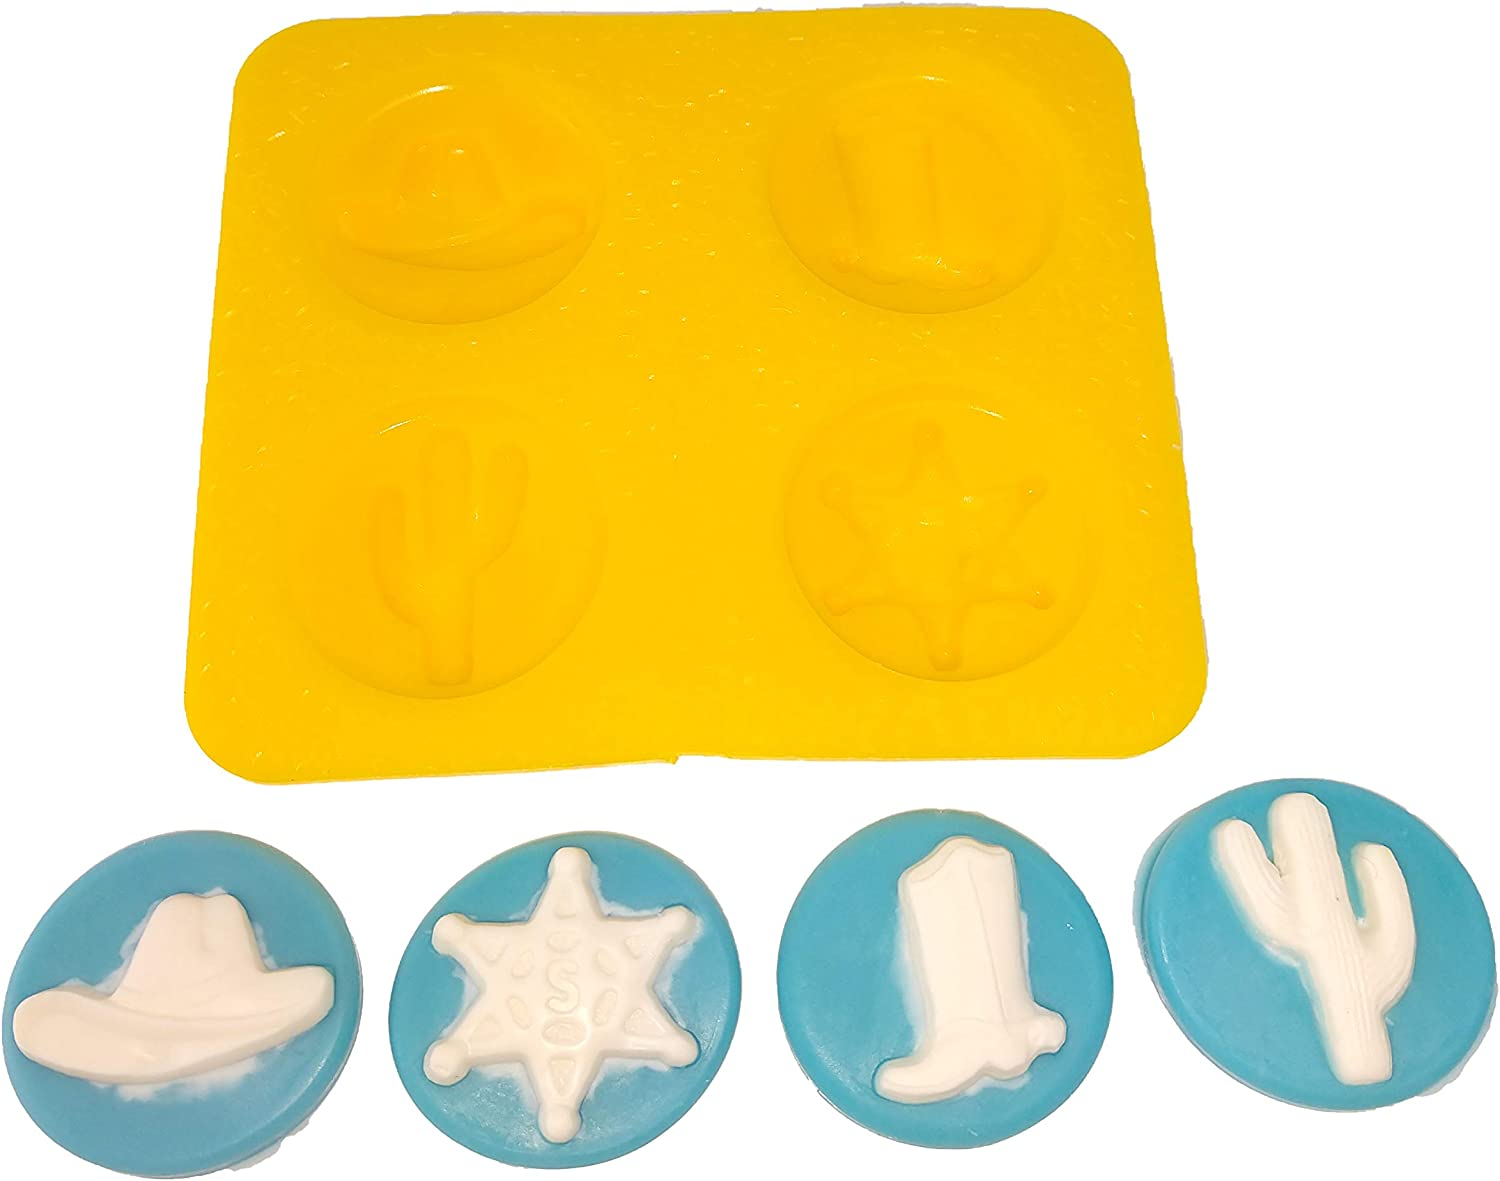 6 cavities  Boots-Shoe-Cowboy Shoes silicone mold Fondant-Resin-crafts-Clay-Candy-Jewelry-gumpaste